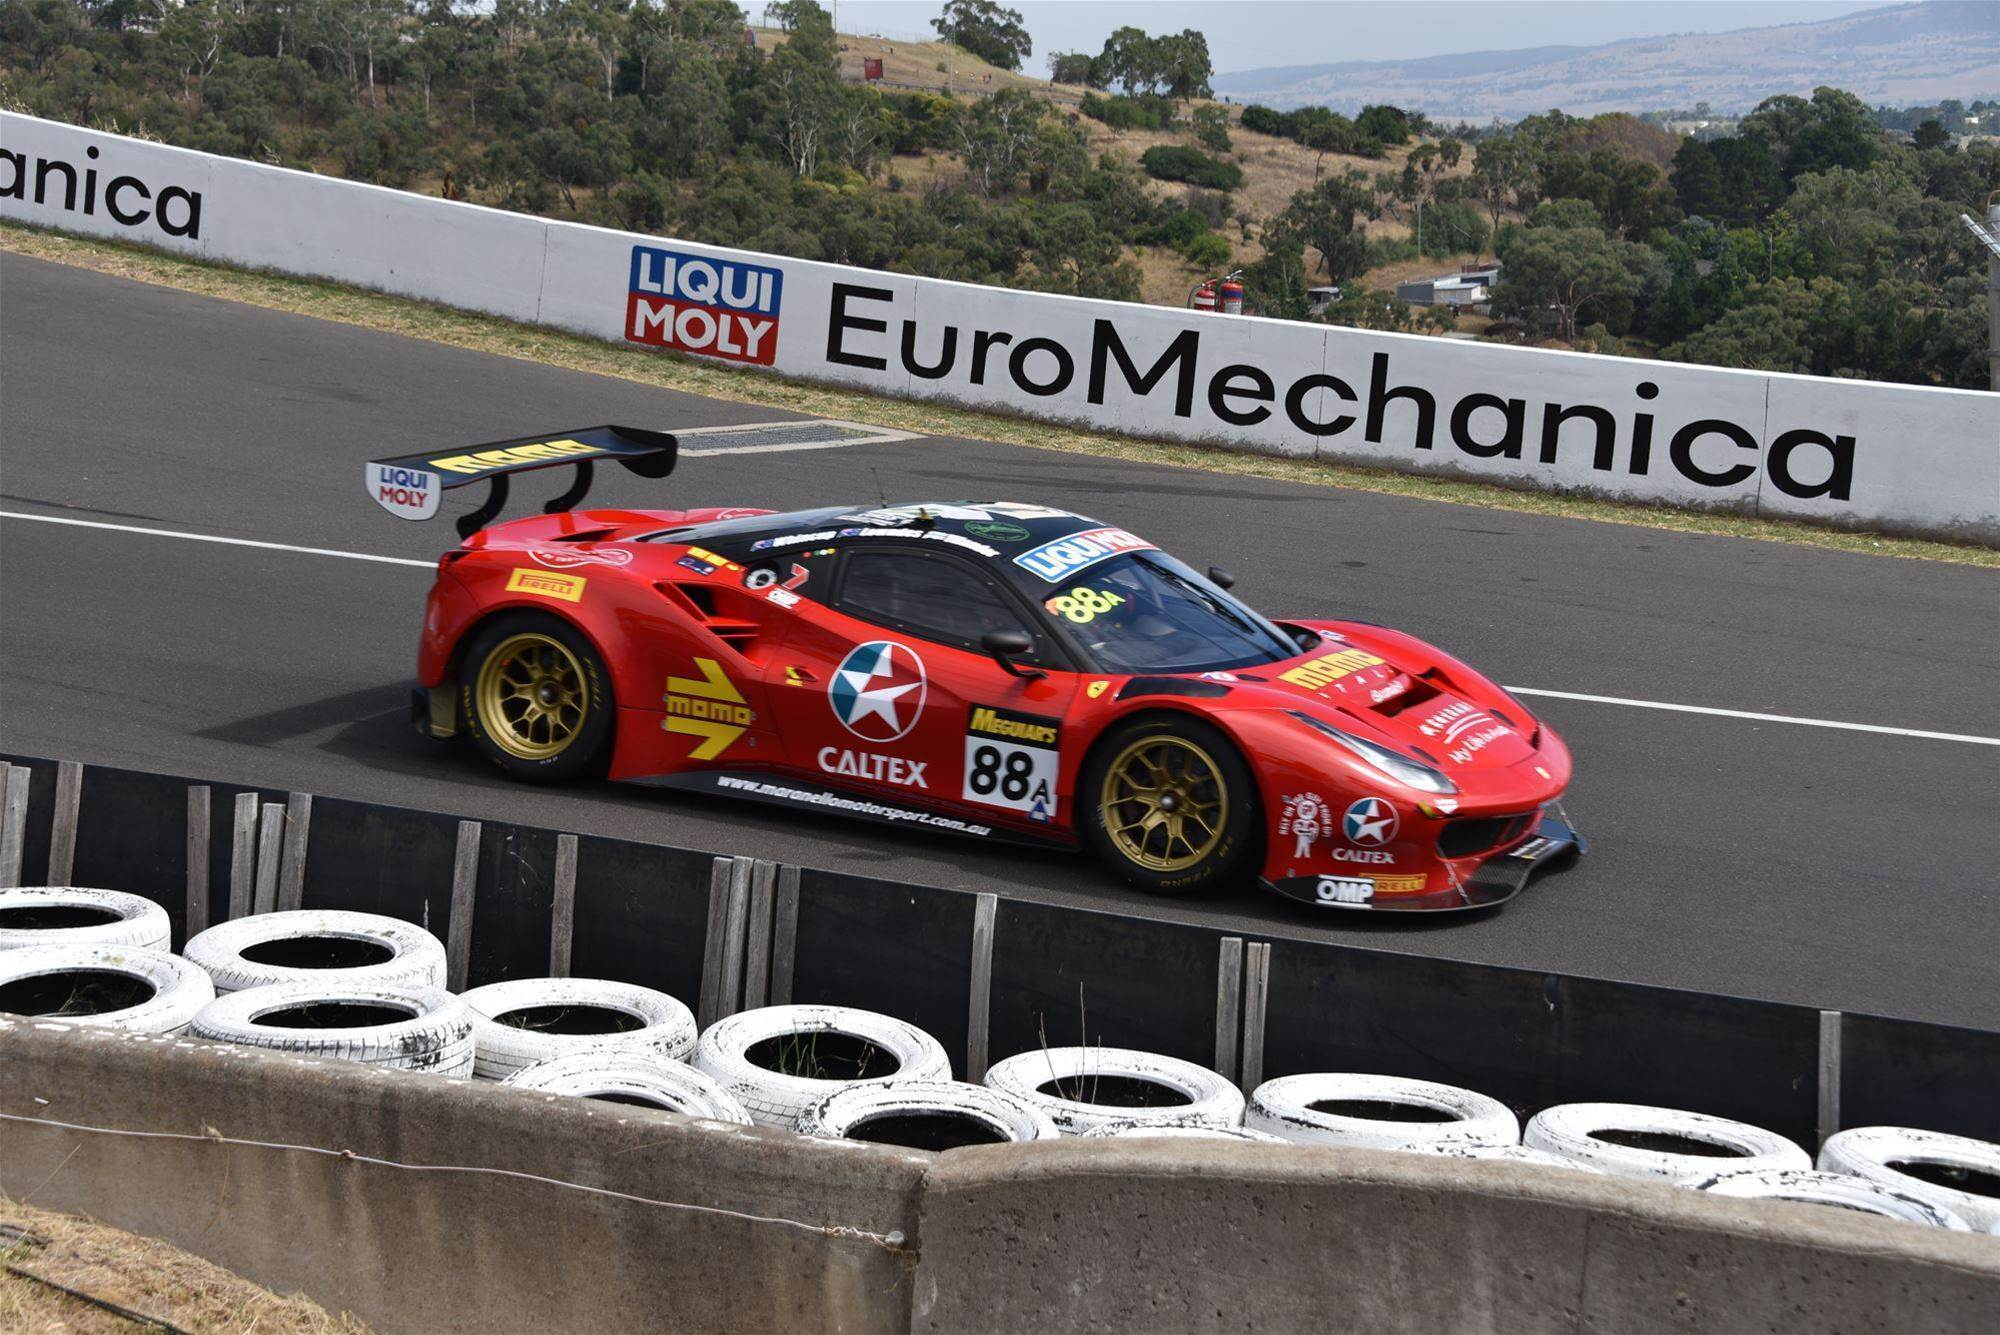 Ferrari on pole for Bathurst 12 Hour